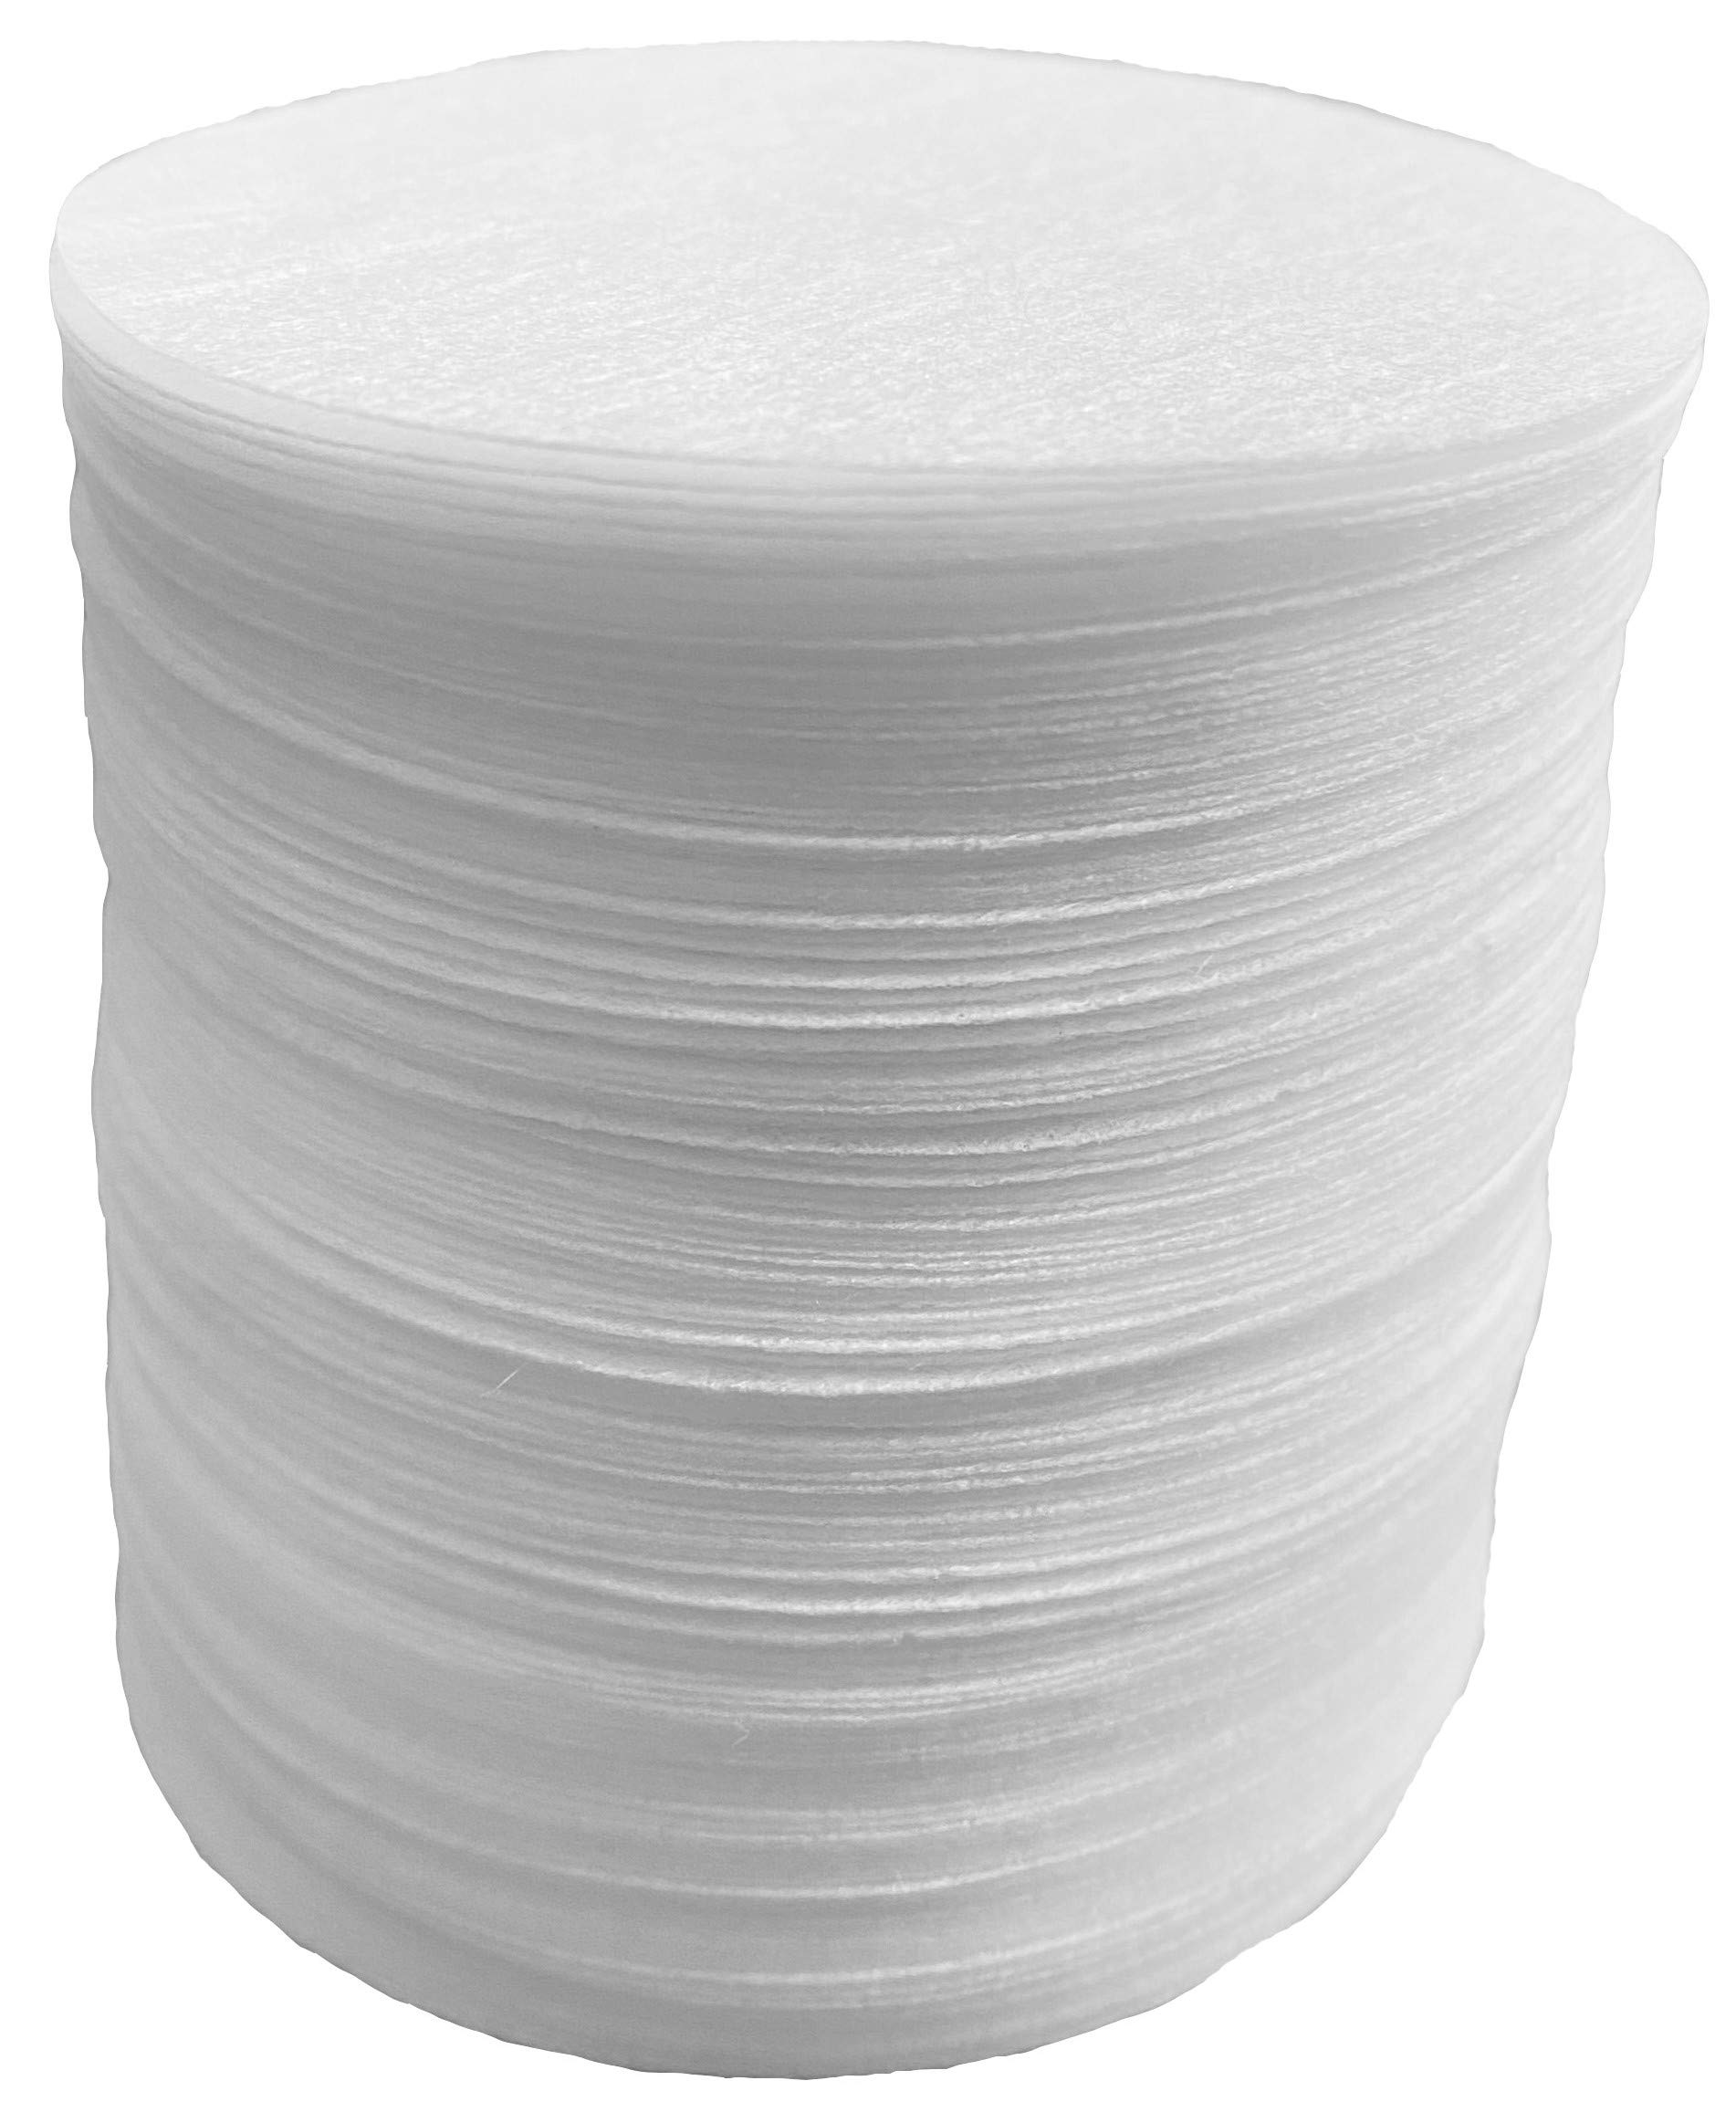 700 Count, REUSABLE Replacement Filters For The AeroPress Coffee And Espresso Maker, Designed for The INVERTED Brewing Method